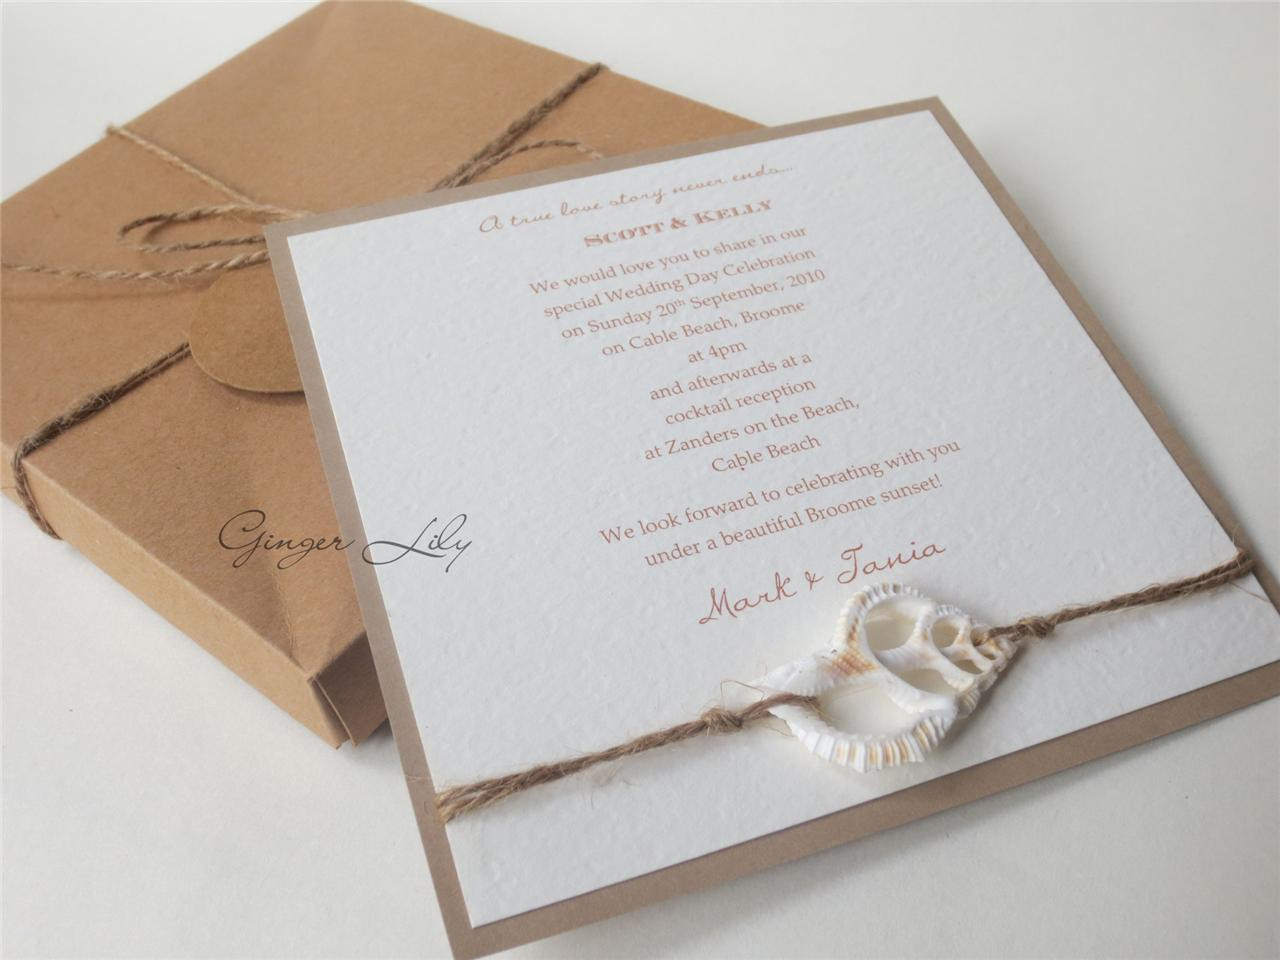 Best ideas about DIY Invitations Kits . Save or Pin Wedding Invitation DIY Kit Vintage Beach Makes 25 Now.